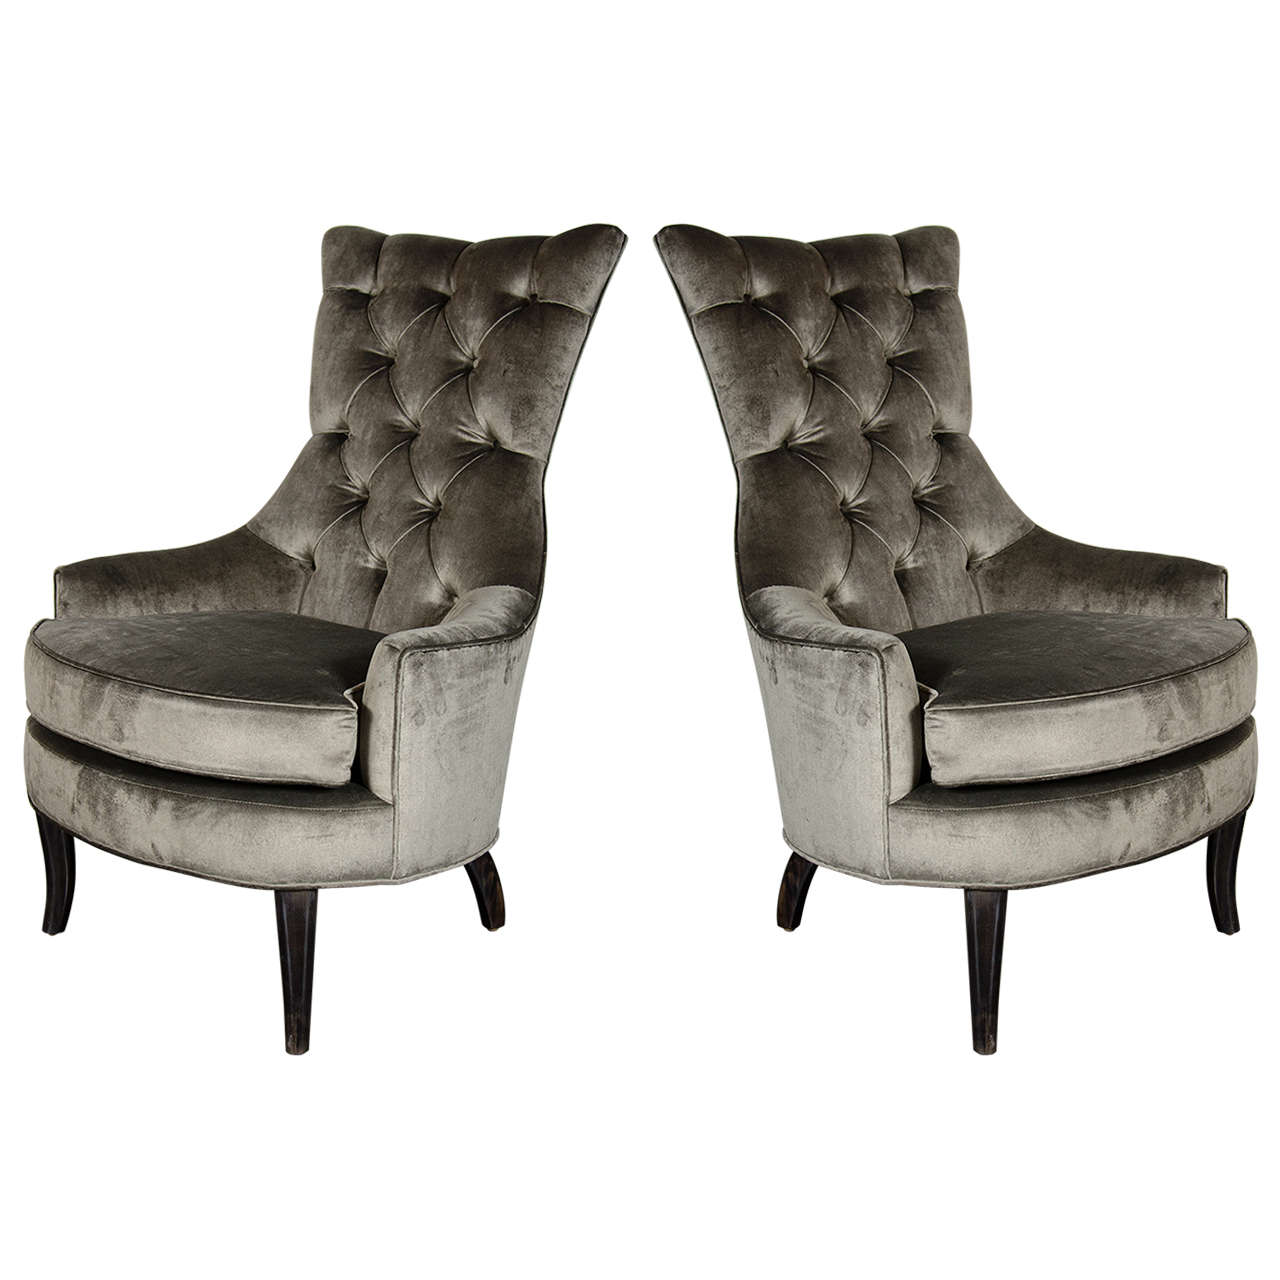 Tufted High Back Chair Zef Jam